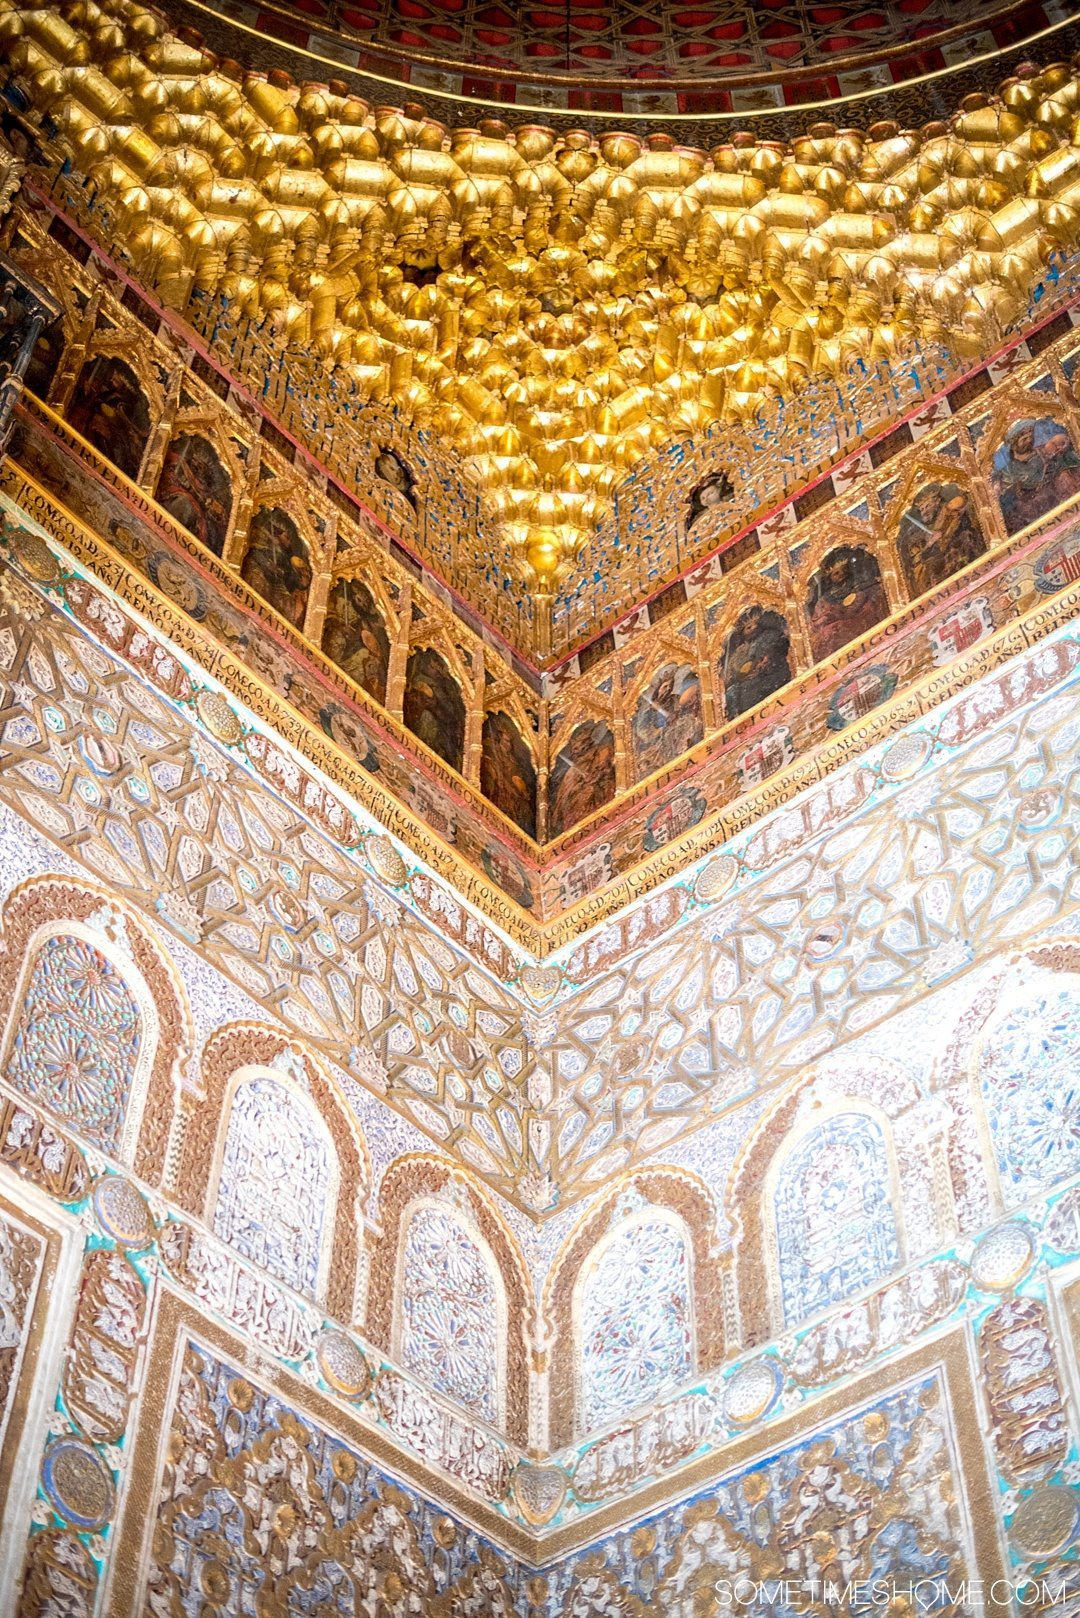 You Haven't Seen Seville Until You've Visited These 3 Sites, by Sometimes Home travel blog. Photo of Real Alcazar and a mudejar architecture style room.